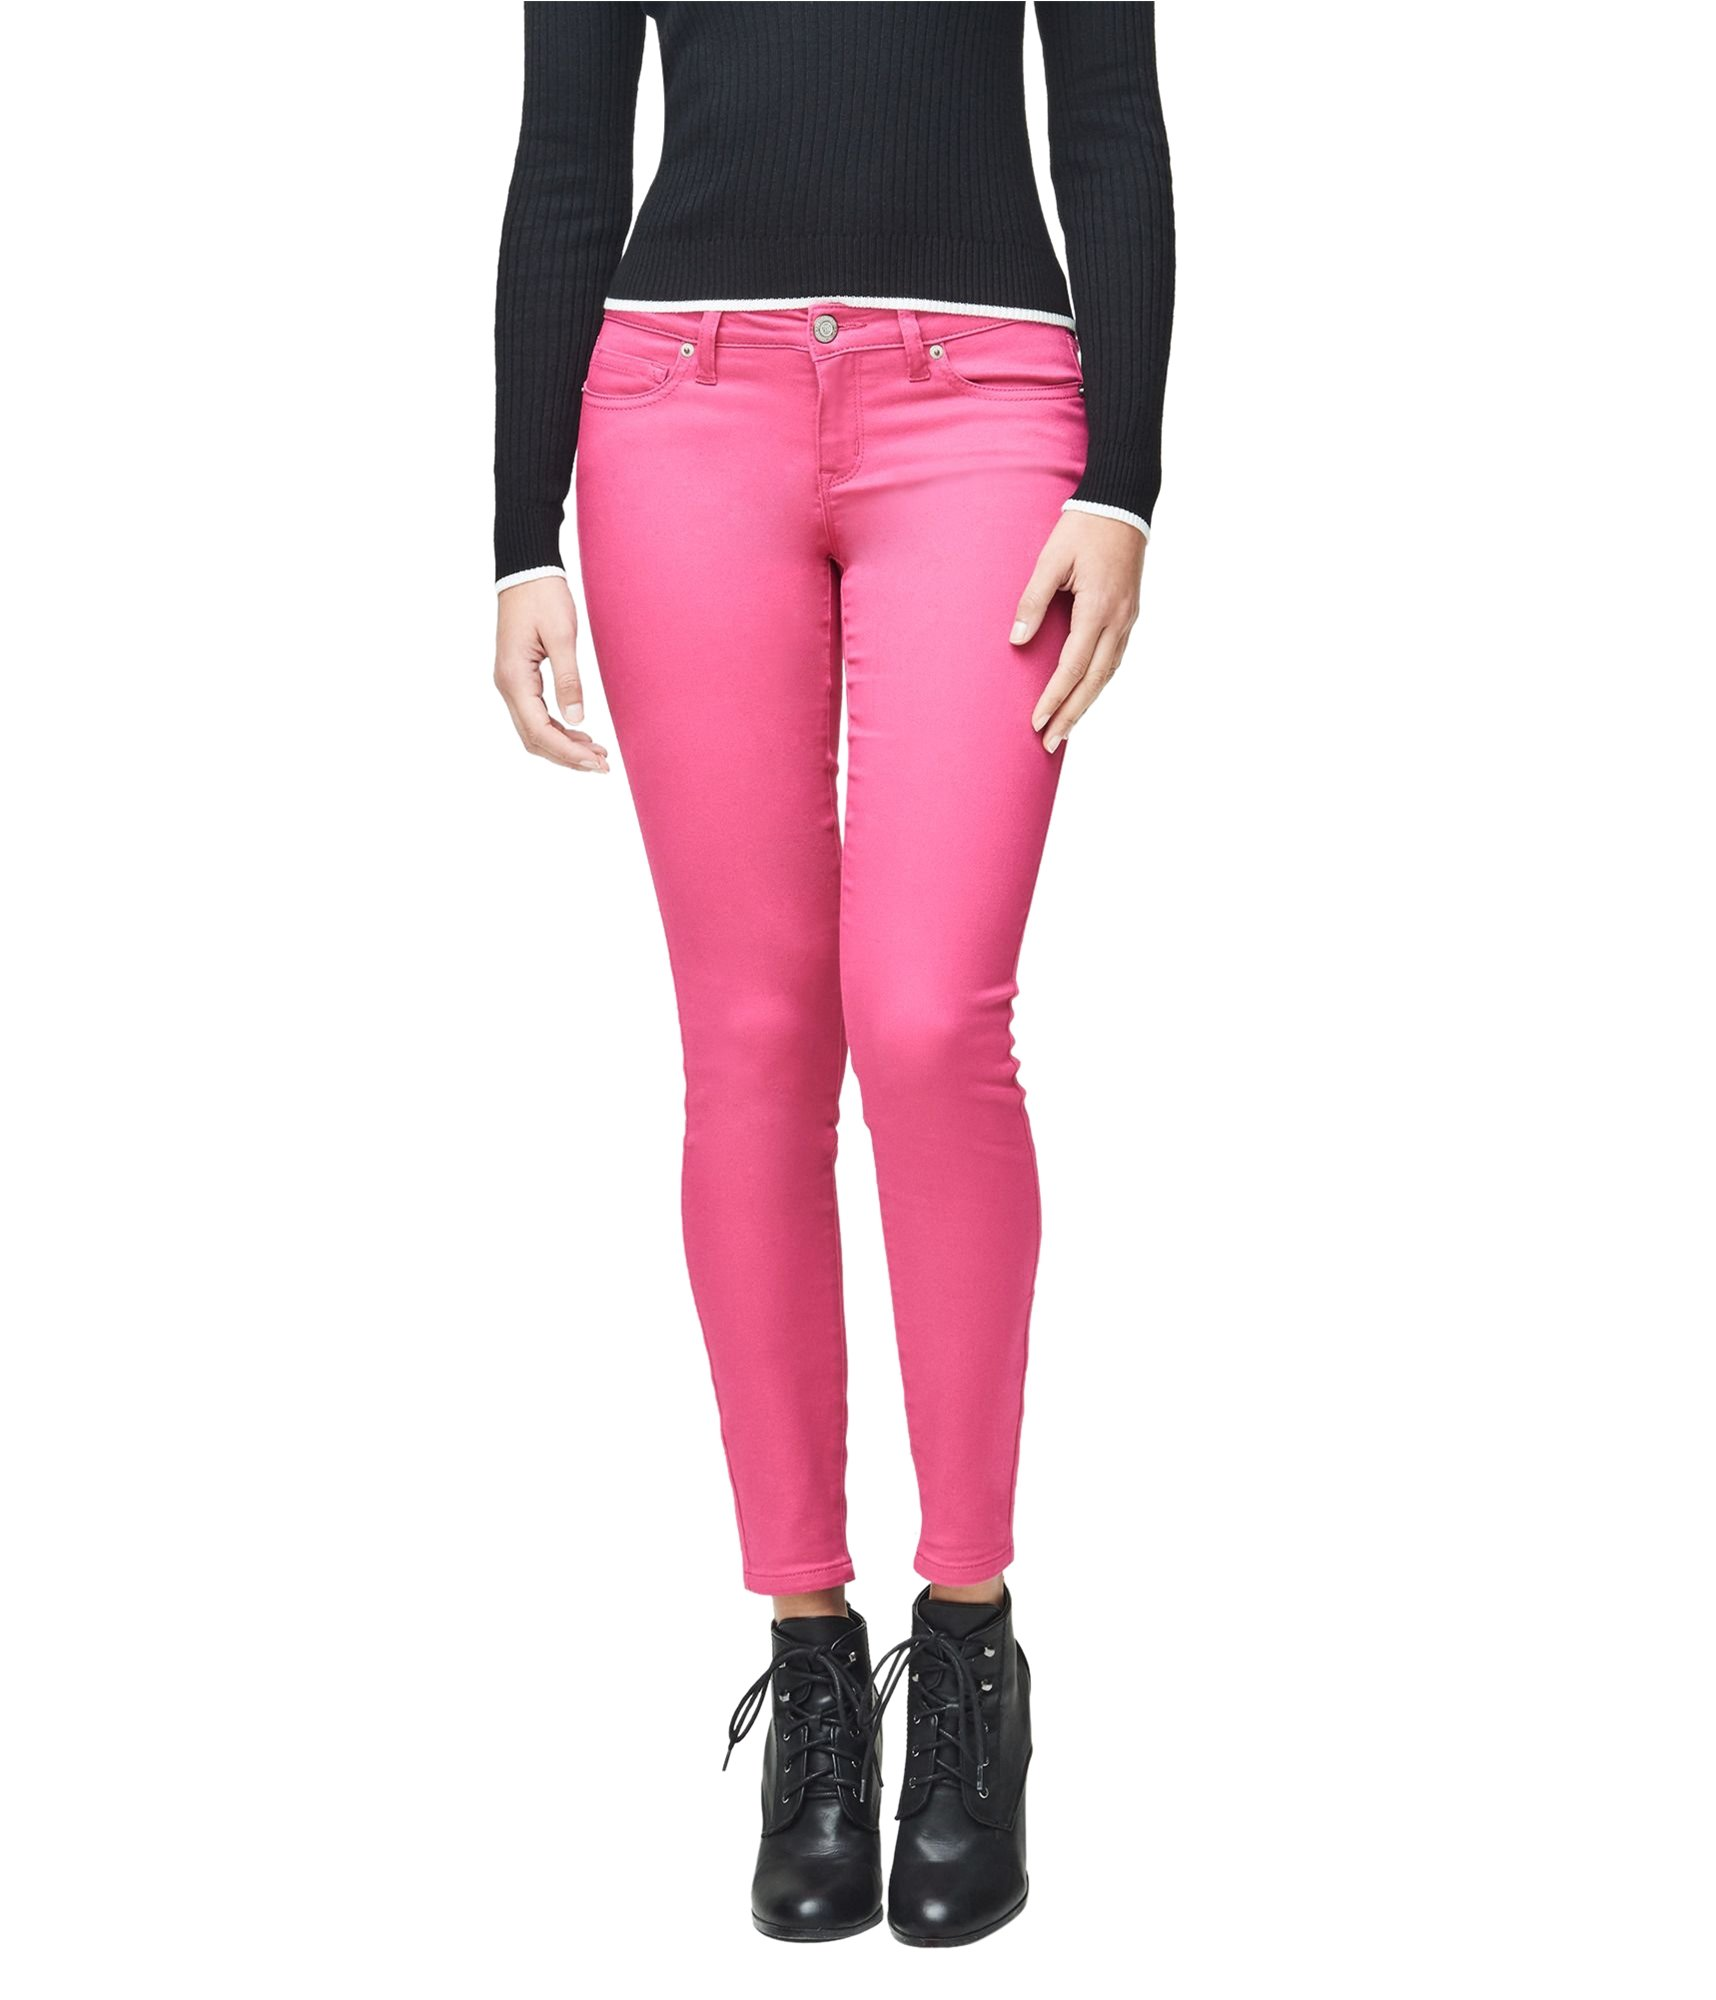 Aeropostale Womens Low-Rise Ankle Casual Leggings Pink 6x27